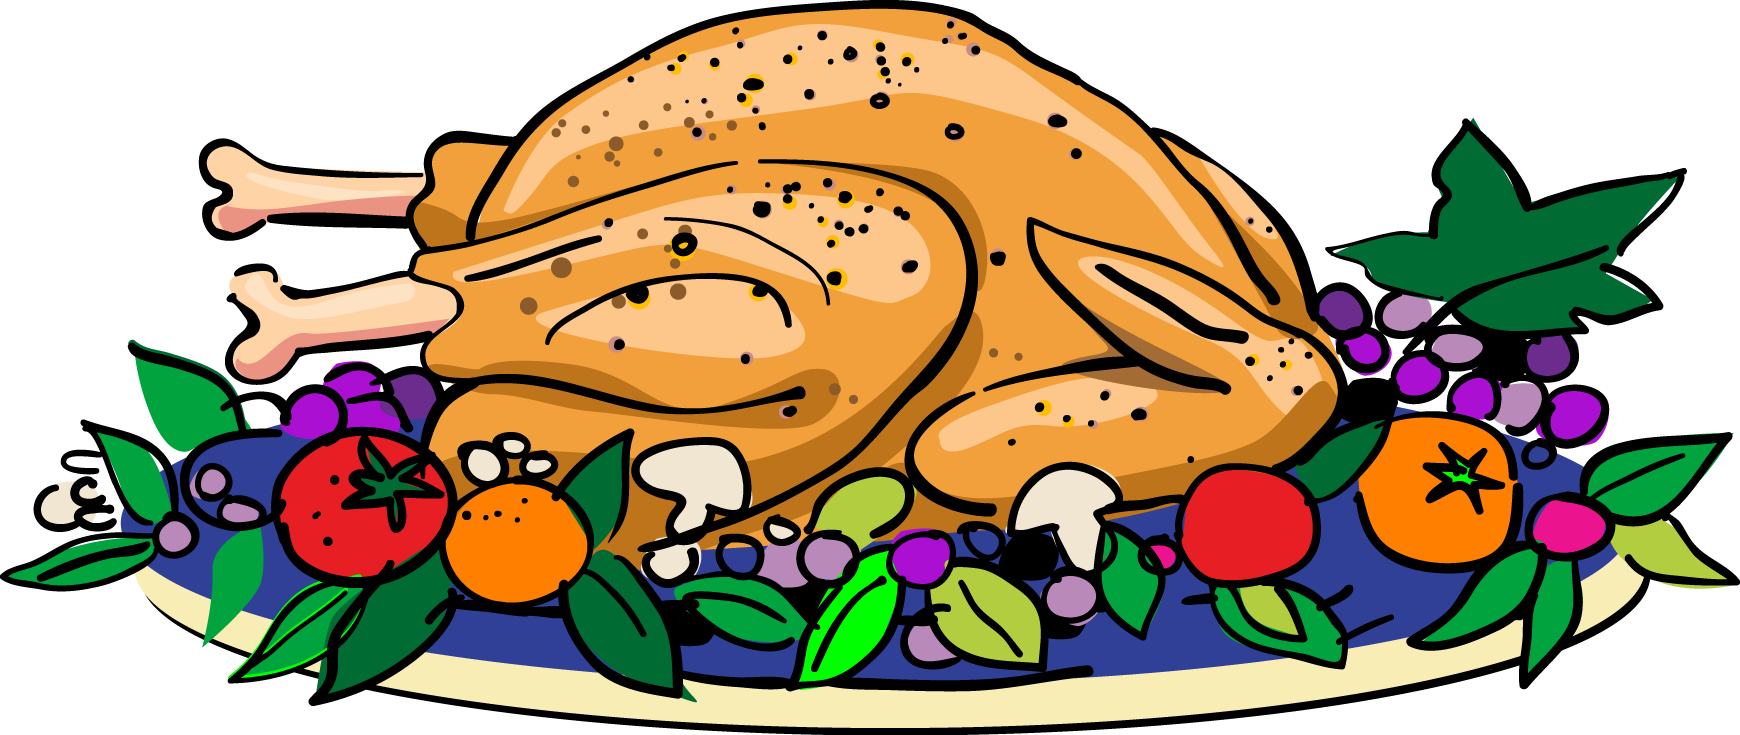 Turkey clipart of food image free download 28+ Collection of Turkey Clipart Food | High quality, free cliparts ... image free download